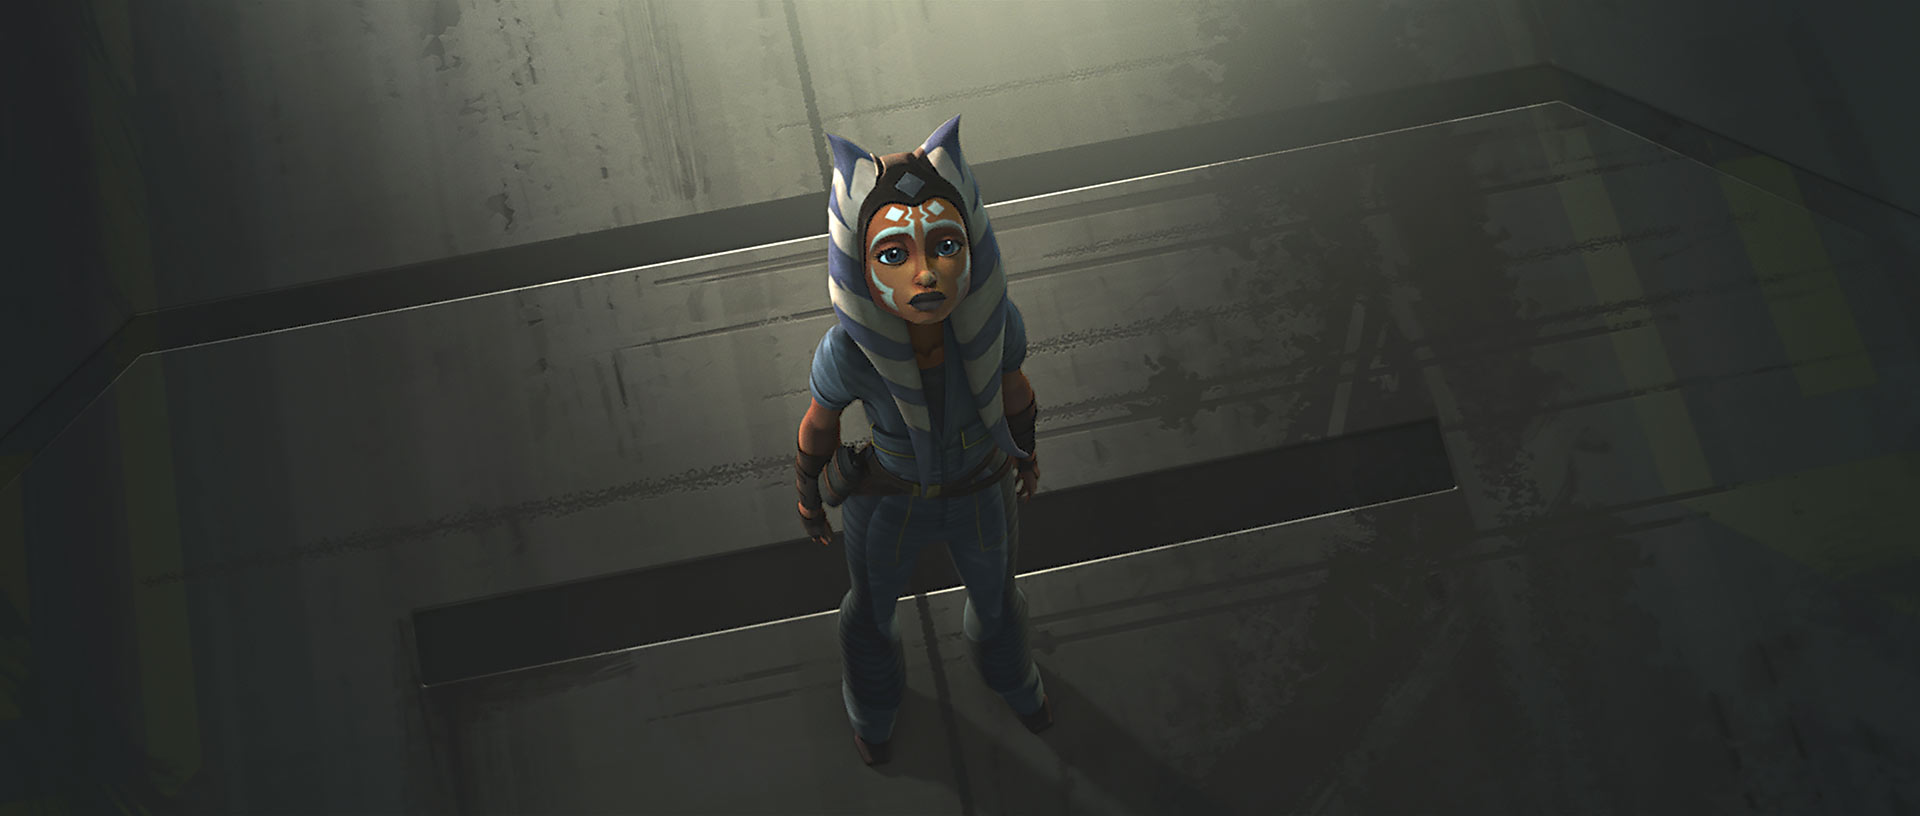 Star Wars: The Clone Wars Season 7 Episode 5 'Gone With a Trace' Recap/Review